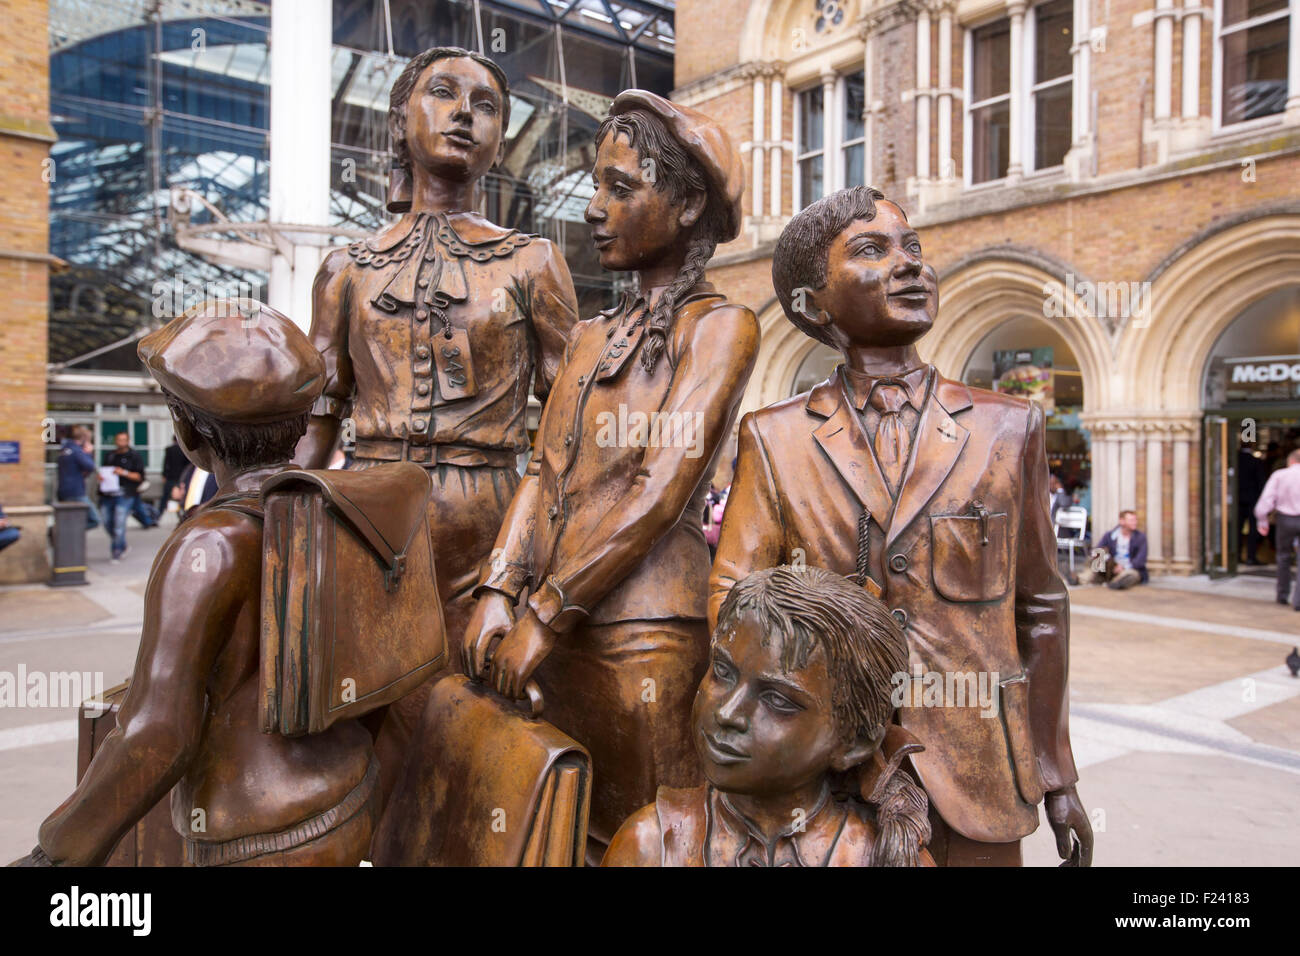 'Kindertransport - the arrival, a memorial by Frank Meisler at Liverpool Street Station in London, where trains - Stock Image